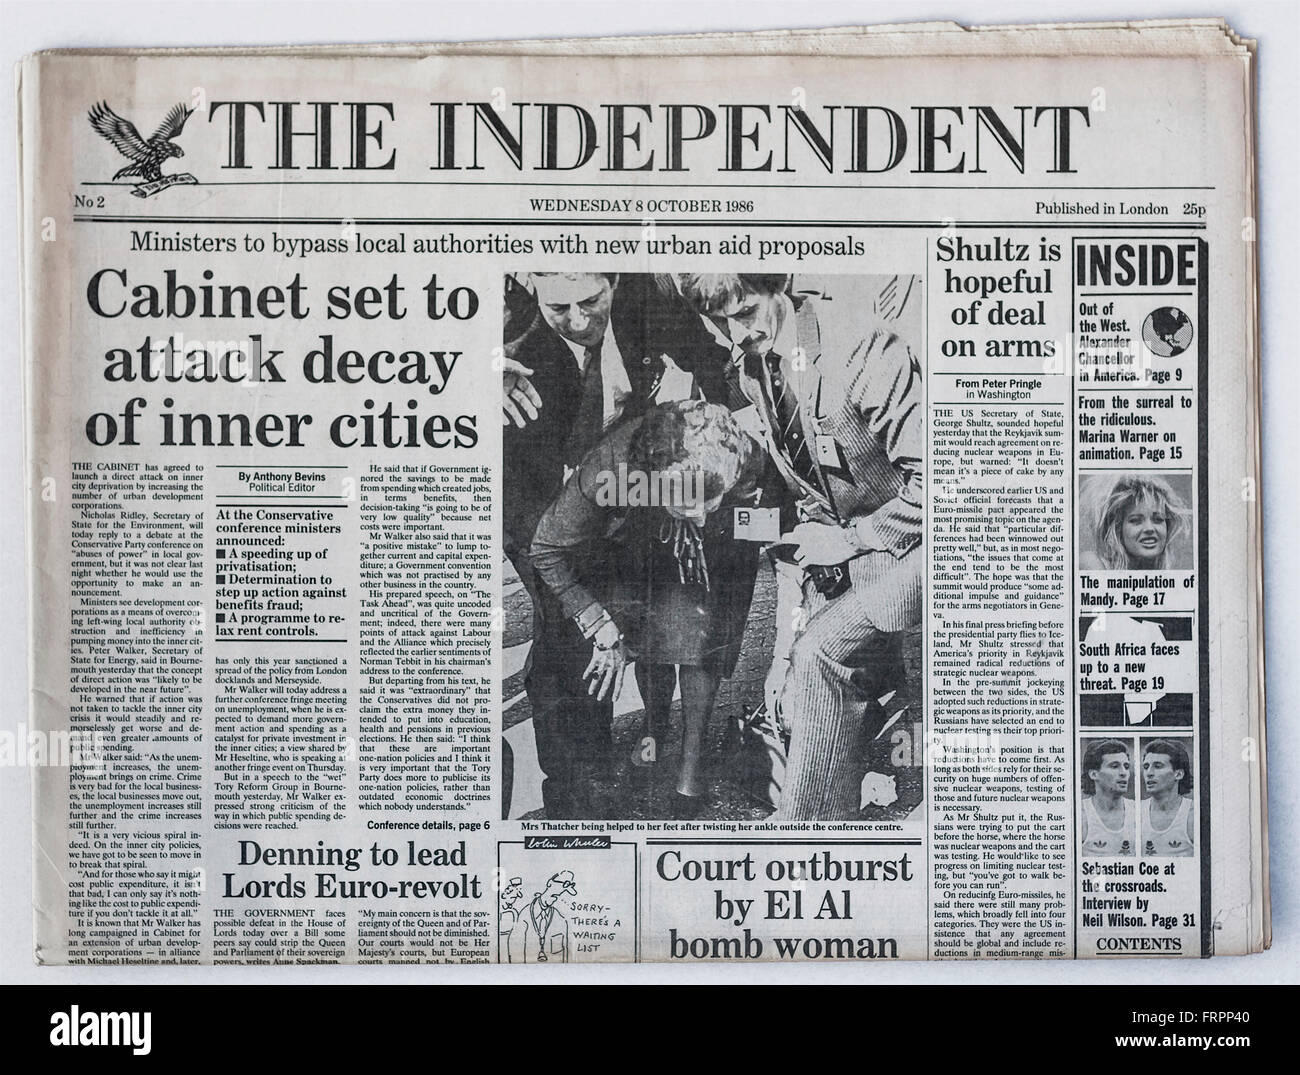 Upper front page Issue #2 'The Independent' UK national newspaper printed Wednesday 8th October 1986 - 'The - Stock Image